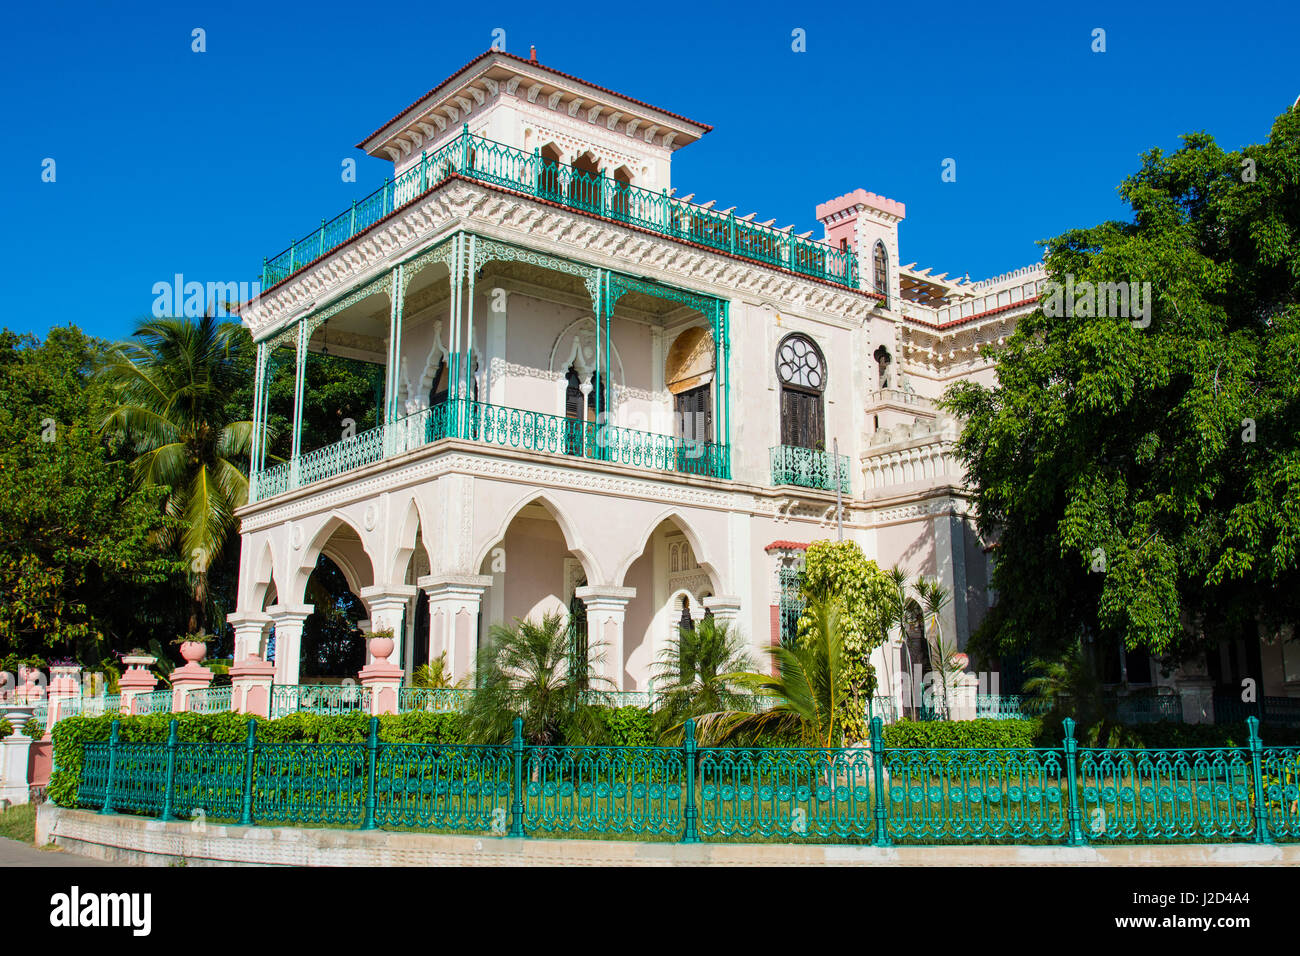 Cuba. Cienfuegos. Palacio de Valle, built in 1919 in an ornate Moroccan style, was a casino for many years. - Stock Image